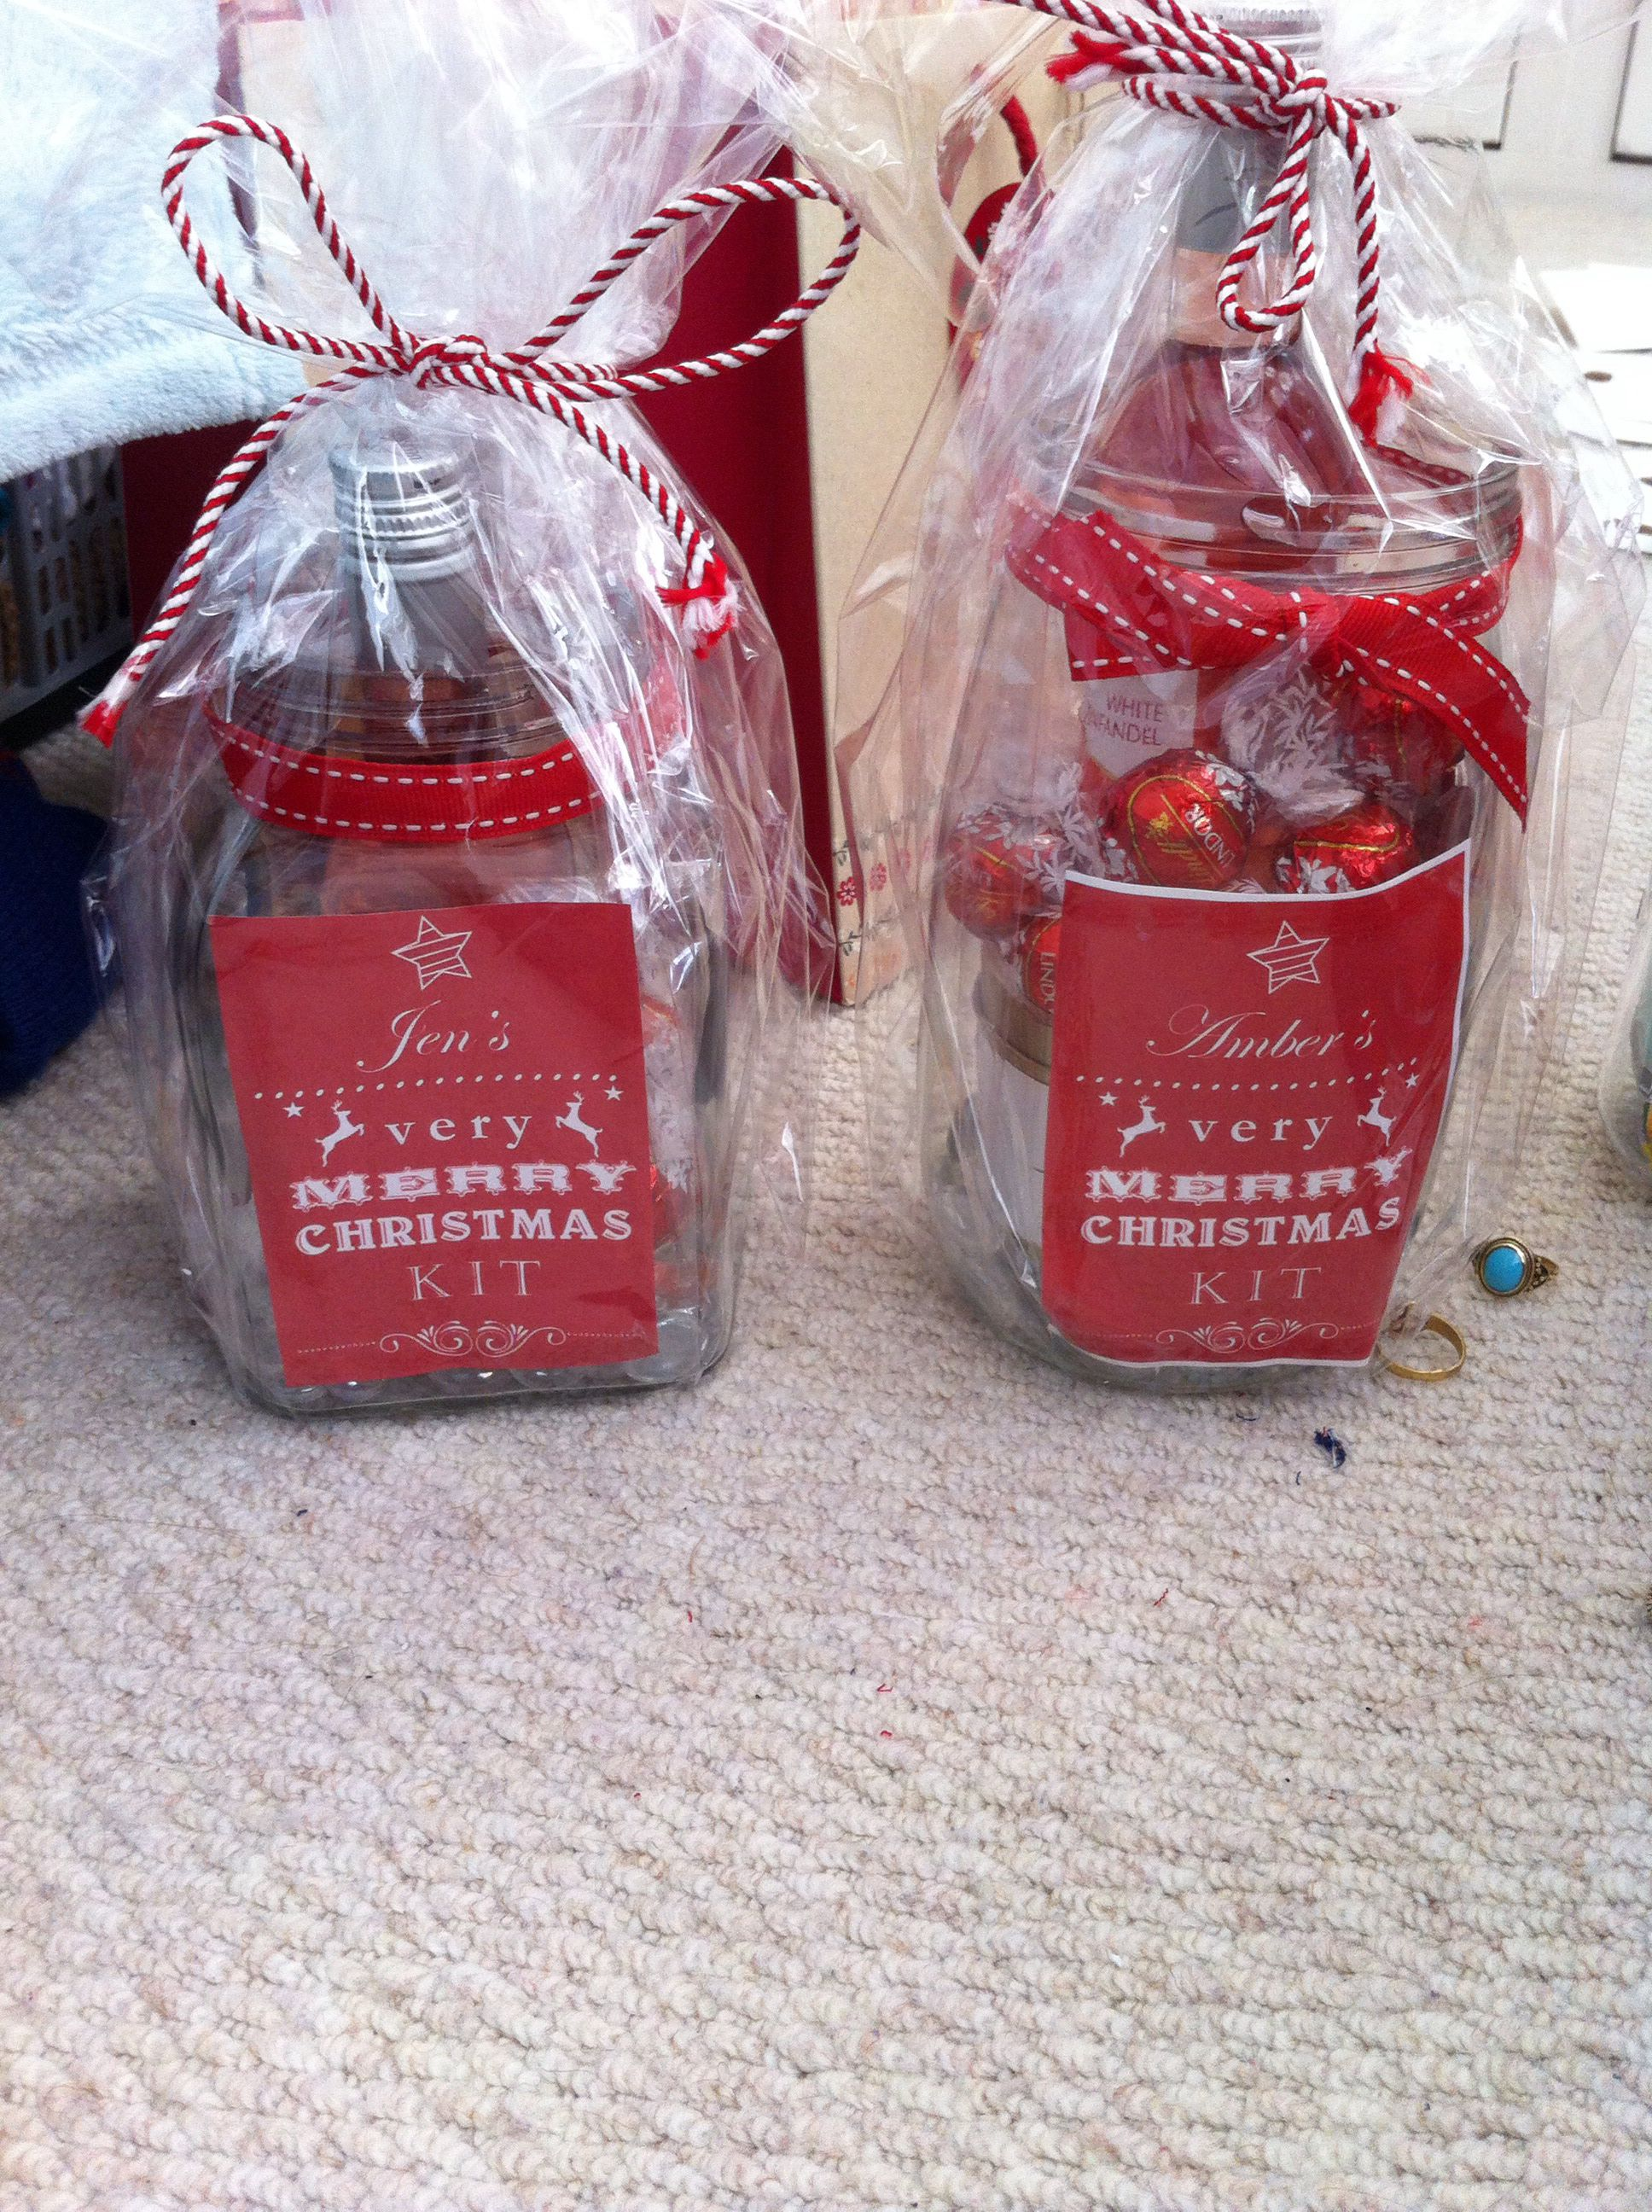 Cute Christmas Gift Idea Jars Filled With Wine Chocolates Candle Hand Cream And Wrapped In Cellophane With Homema Cute Christmas Gifts Jar Gift Wrapping